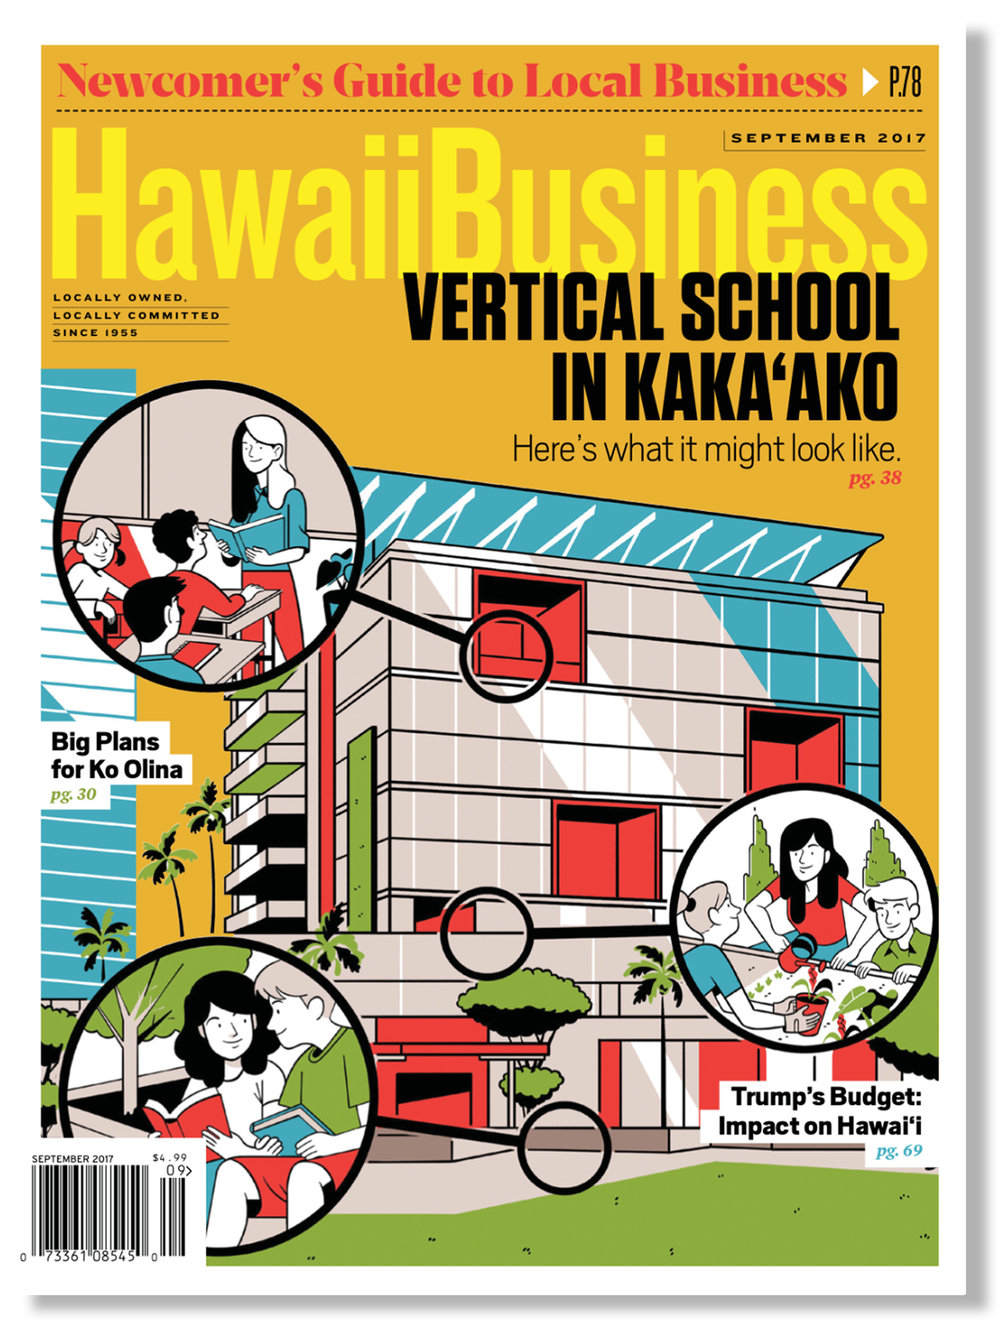 Strawn_and_Sierralta_Vertical_School_Kakaako_web_6.jpg